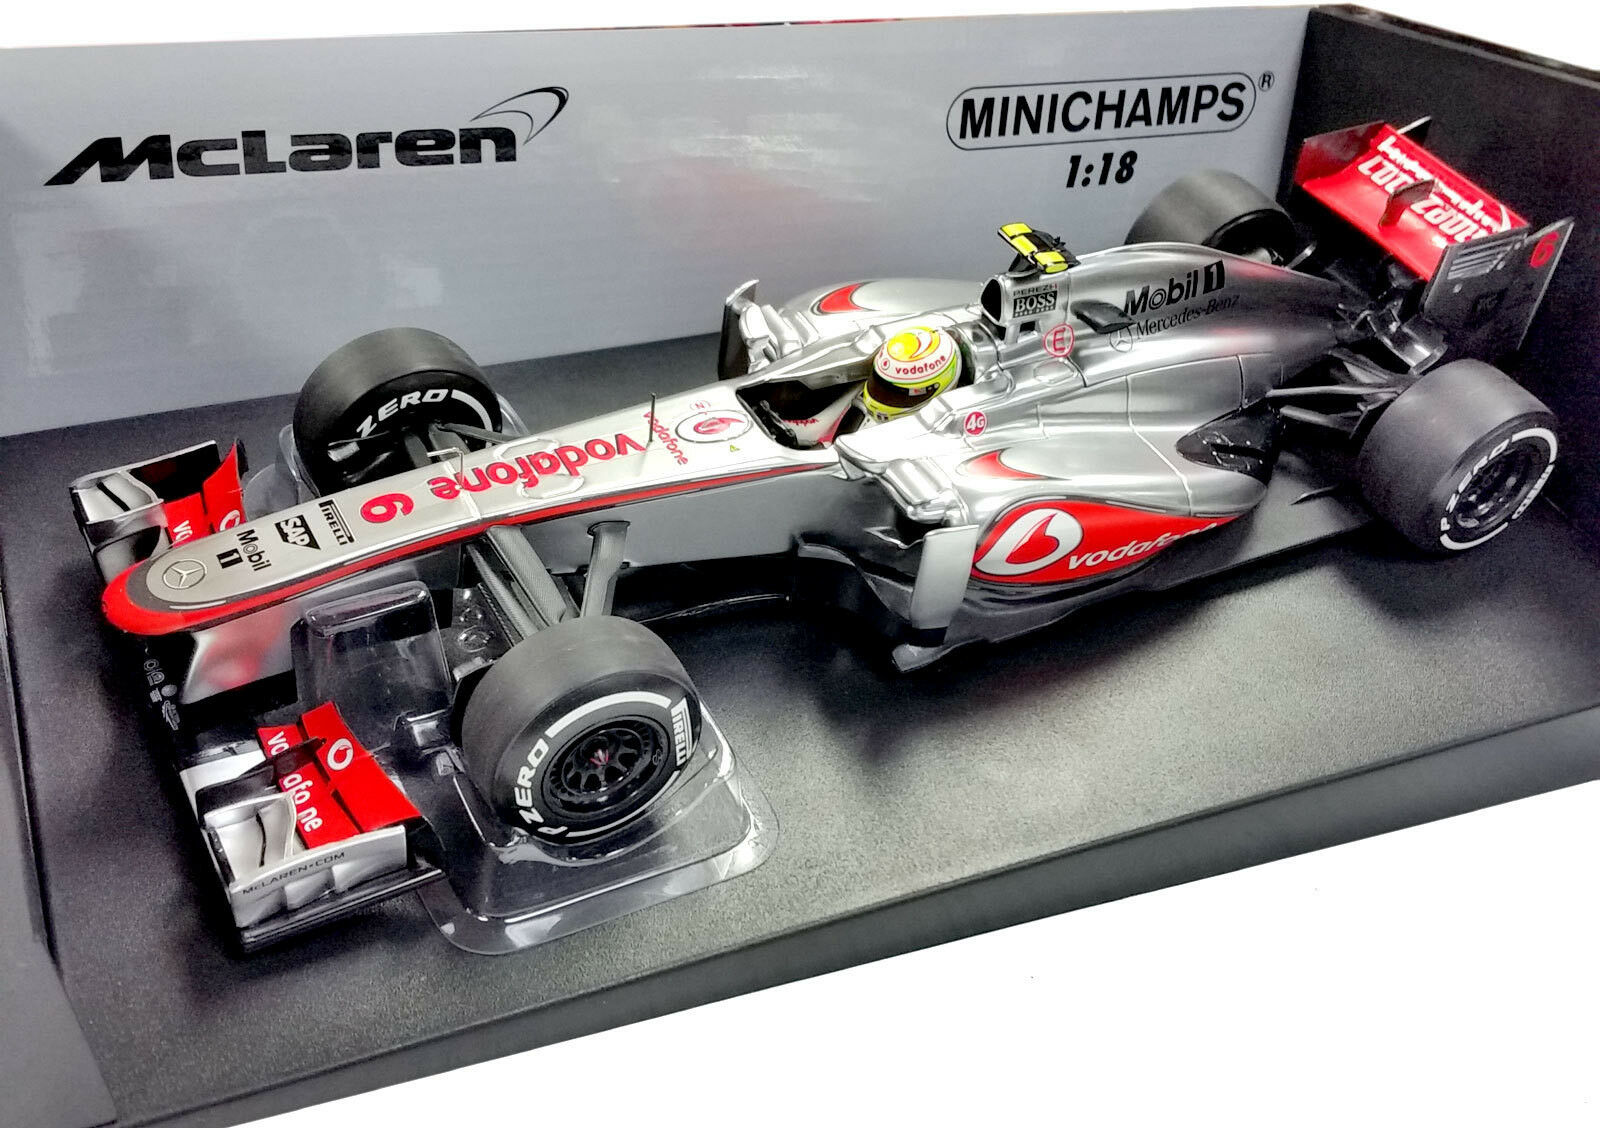 MINICHAMPS 1 18 2013 MCLAREN MERCEDES MP4-28 SERGIO CHECO PEREZ 530131806